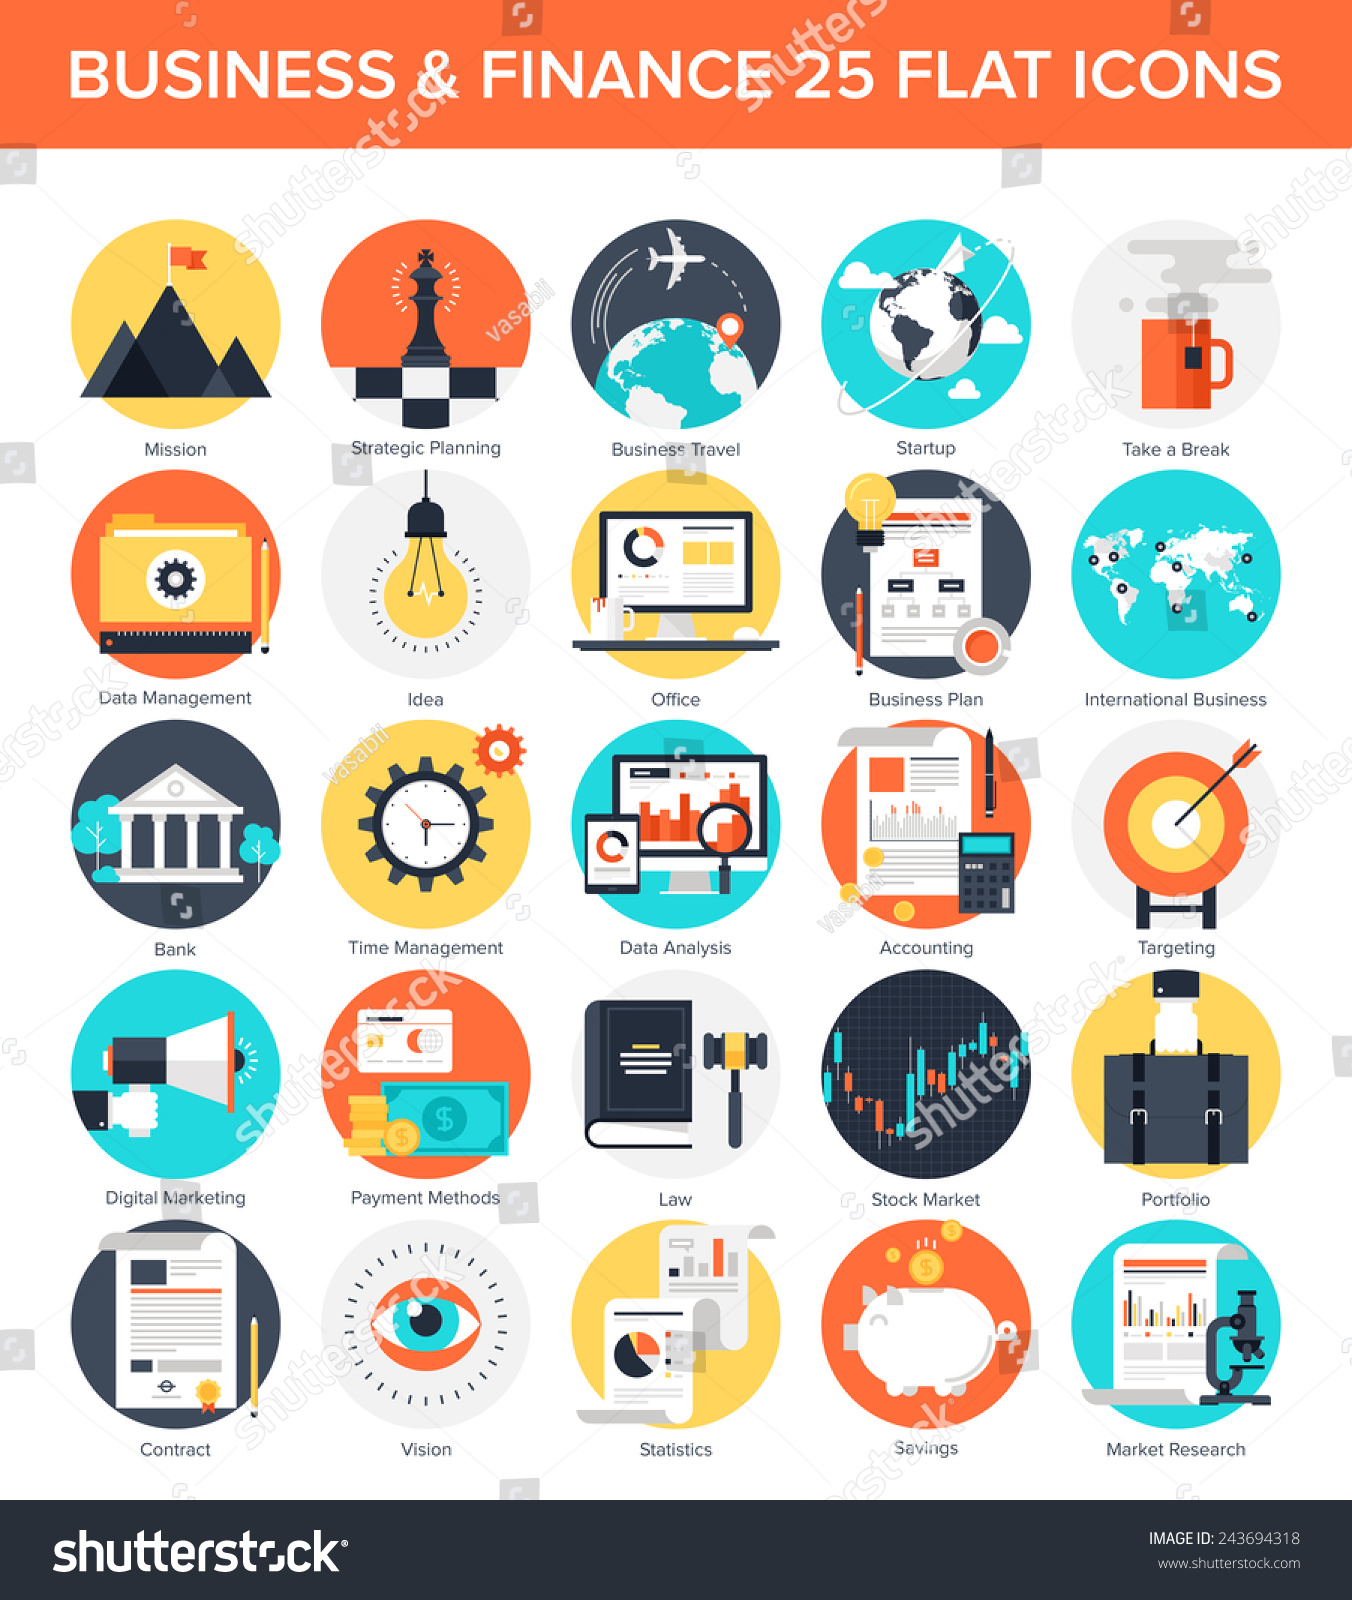 Business Finance: Vector Collection Colorful Flat Business Finance Stock